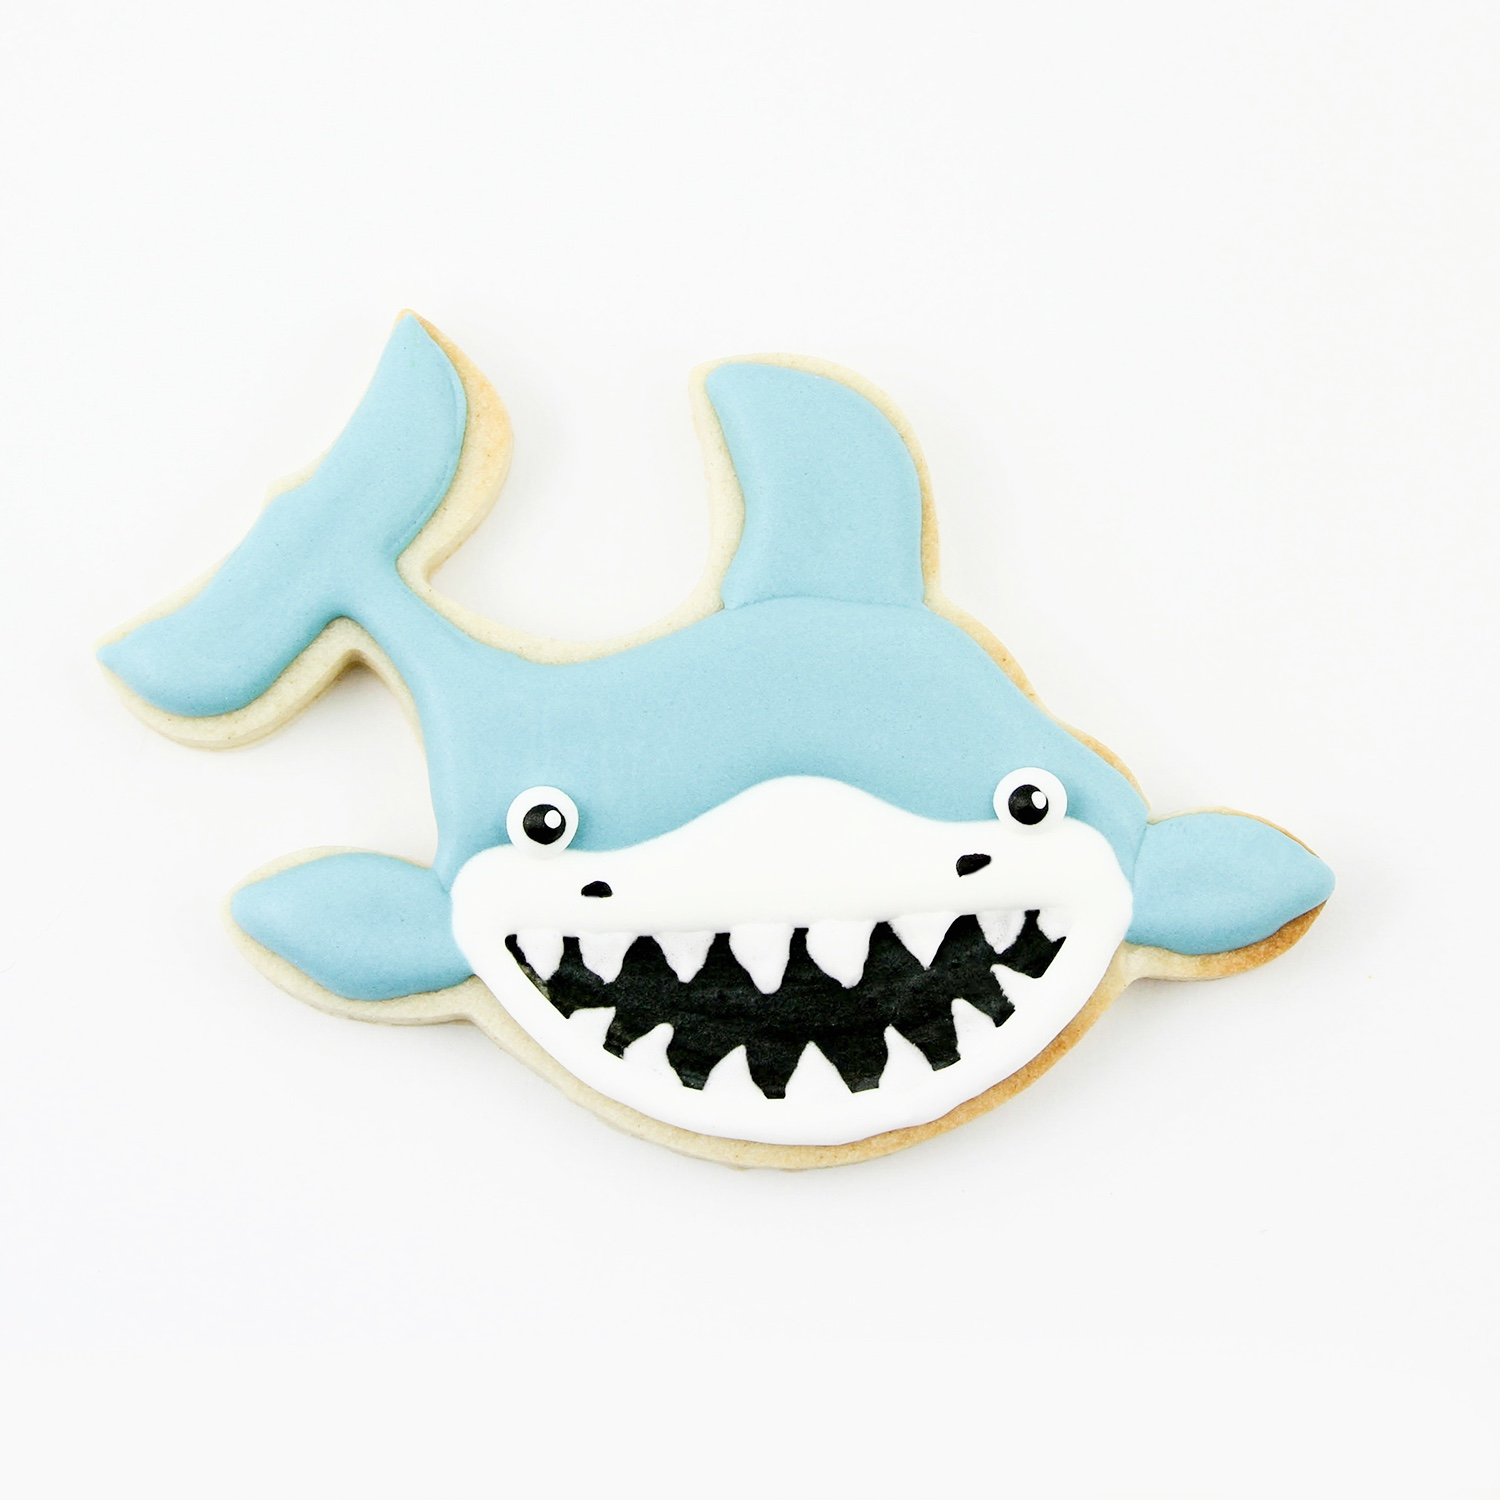 Shark Royal Icing Cookie